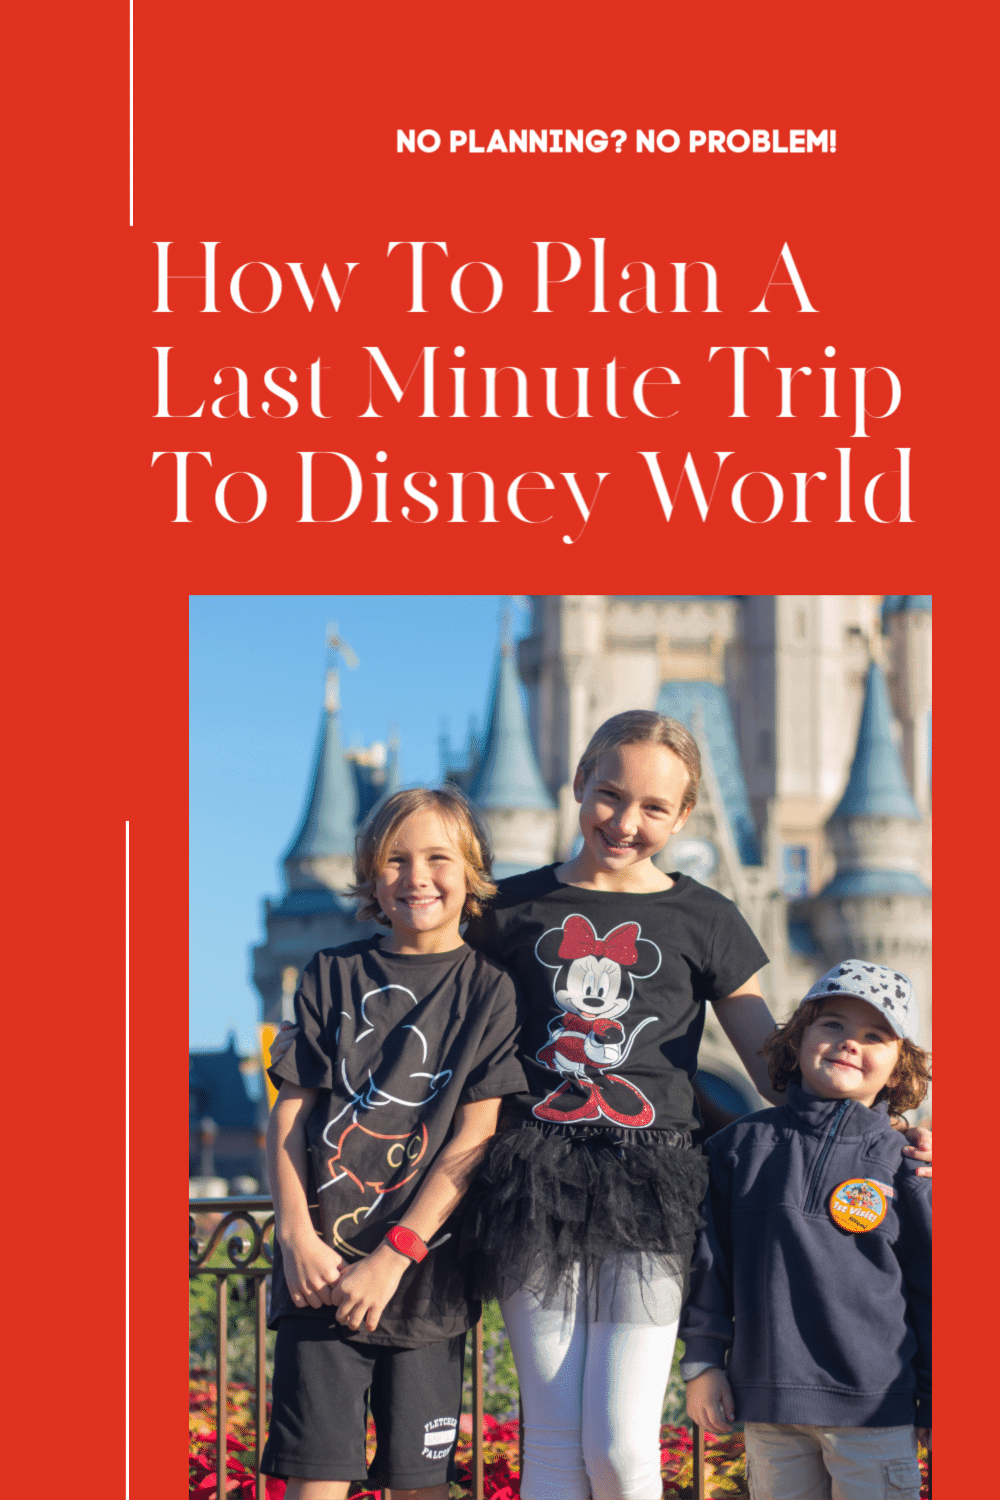 how to plan a trip to disney